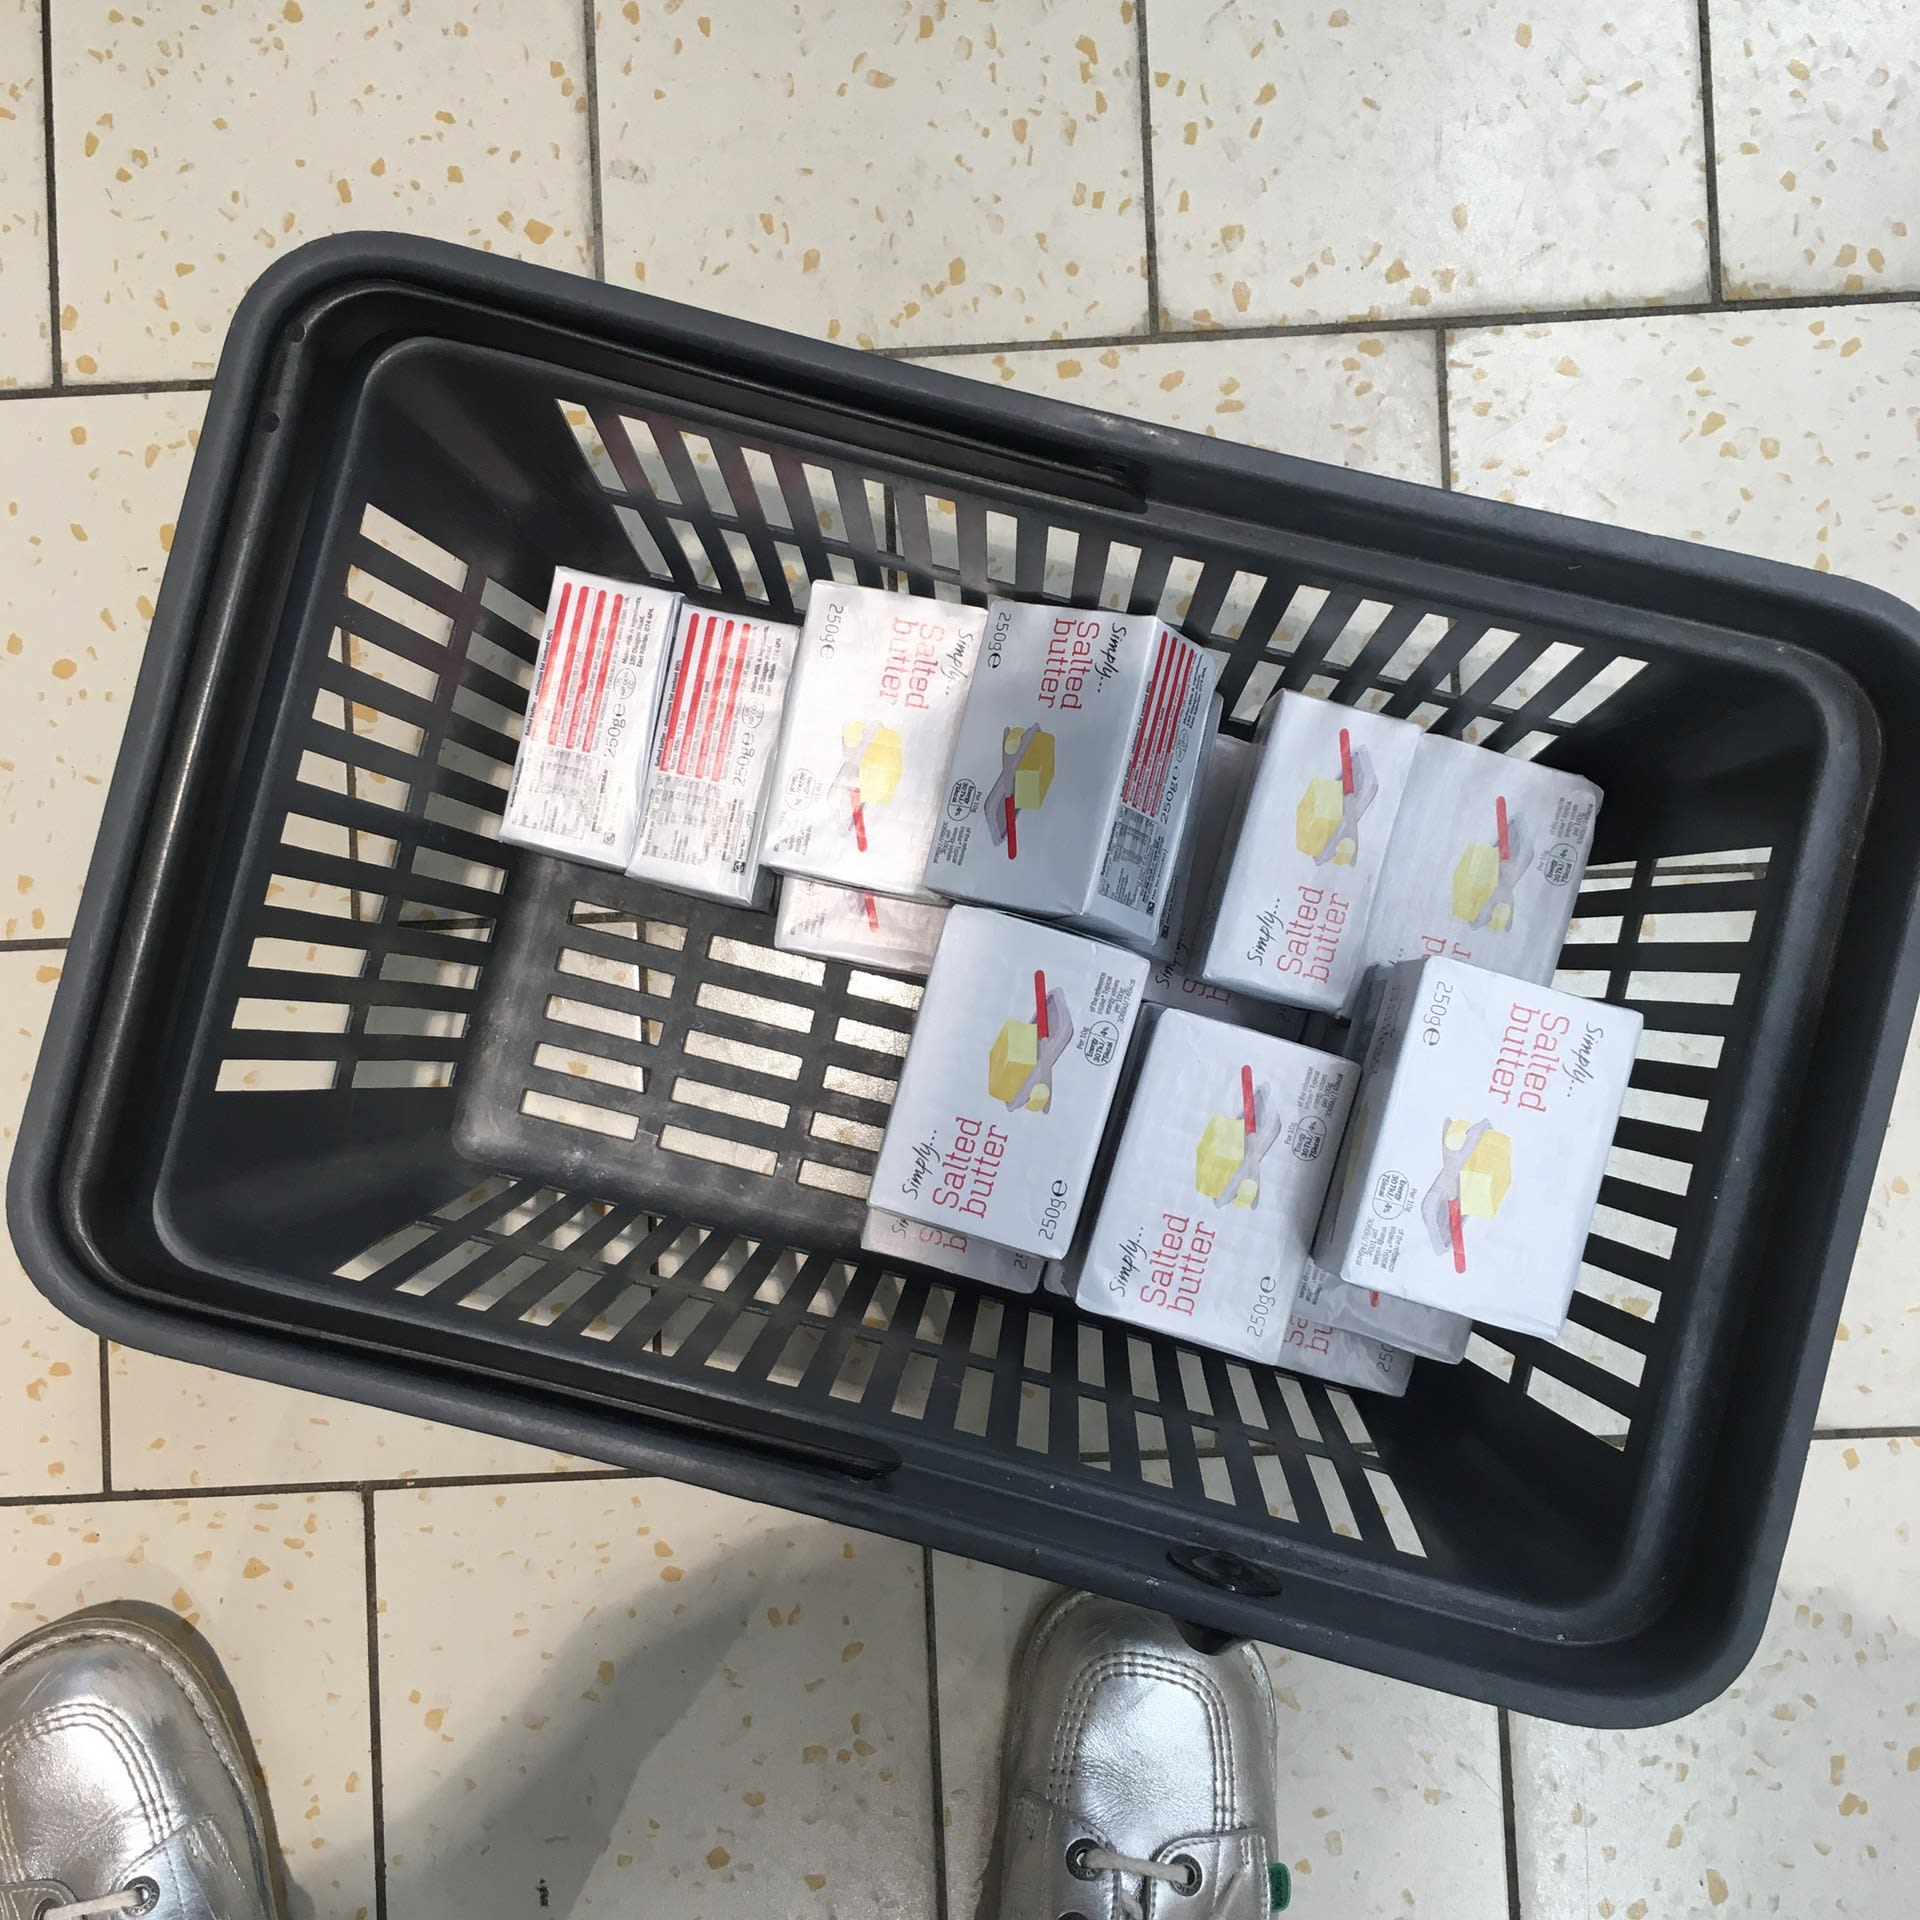 Butter in Basket, Photograph, 2019